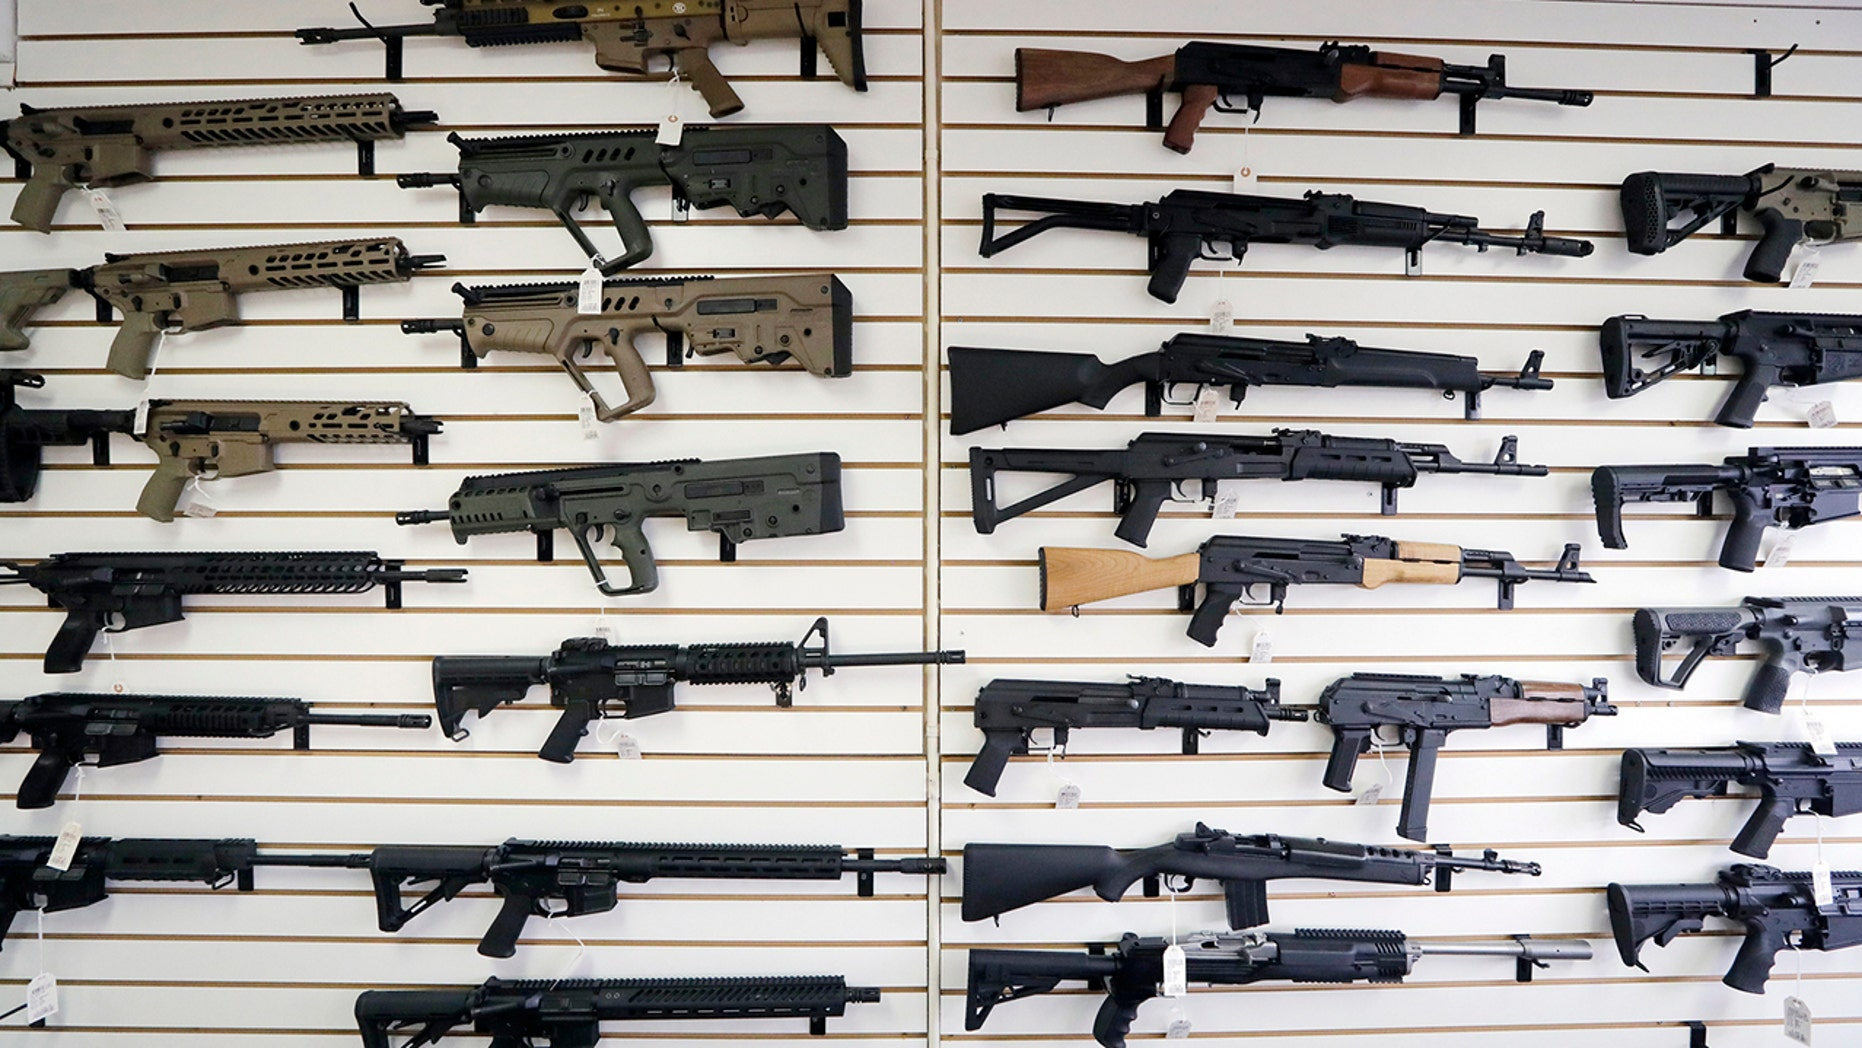 In this photo taken Oct. 2, 2018, semi-automatic rifles fill a wall at a gun shop in Lynnwood, Wash. (AP Photo/Elaine Thompson, File)